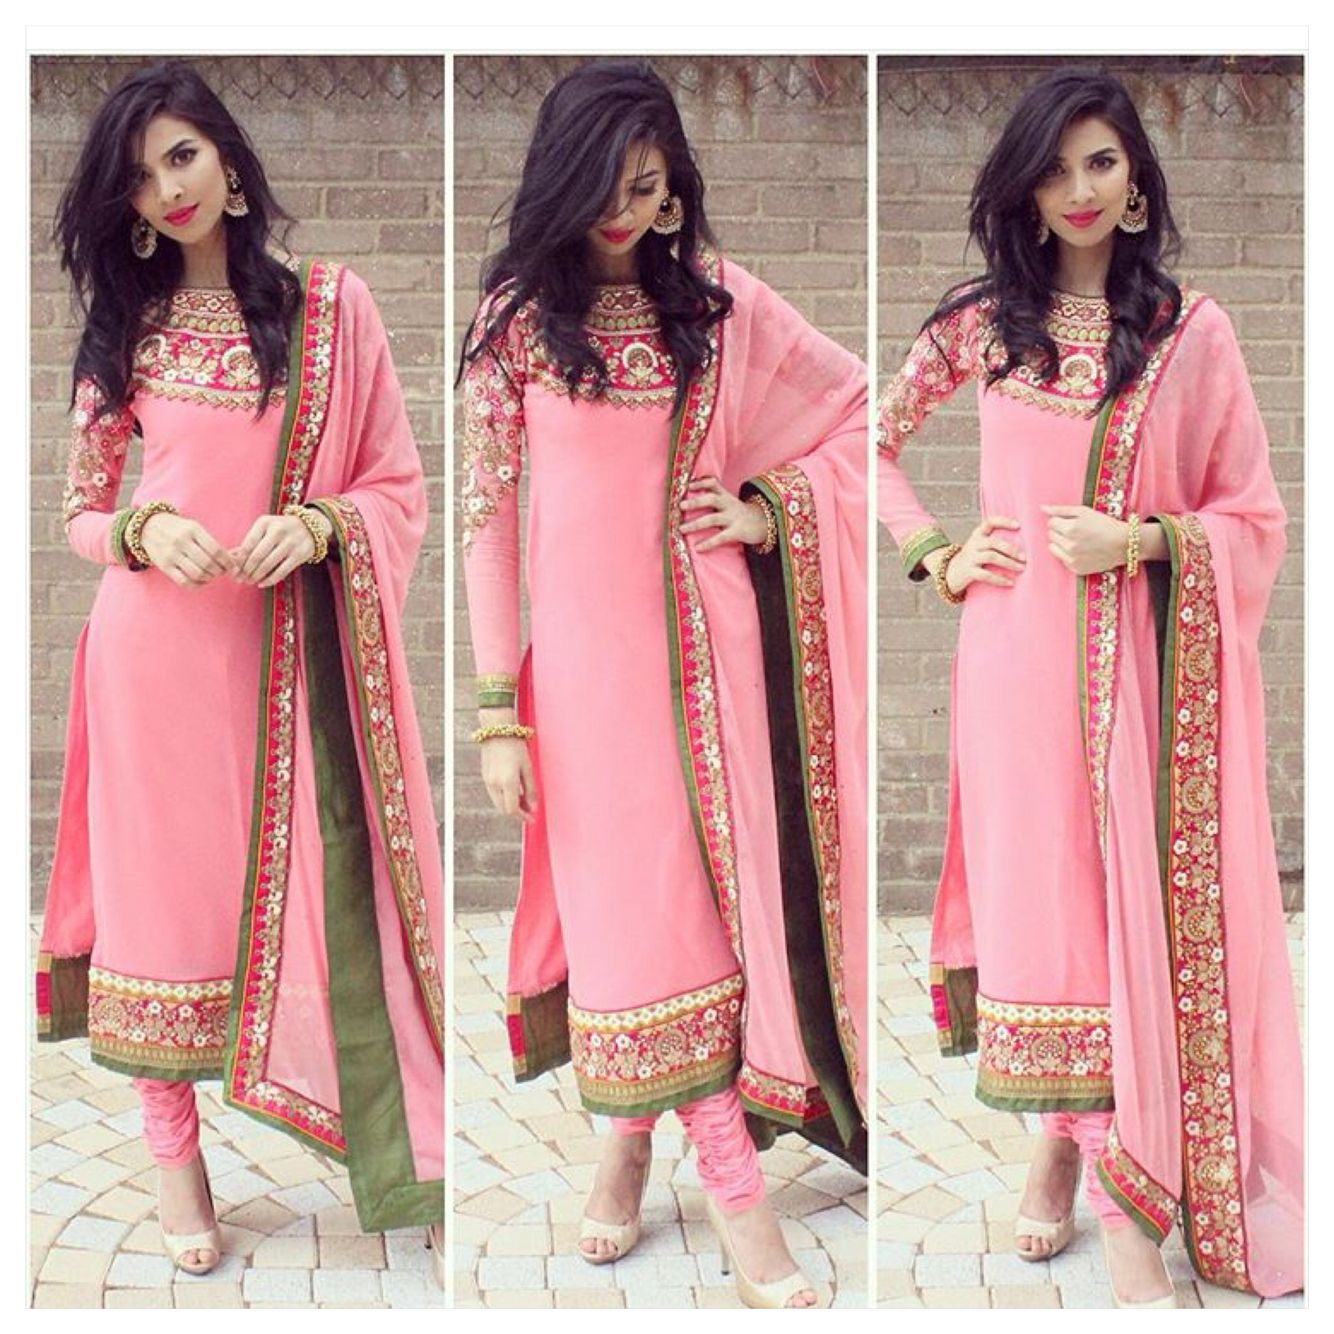 Pakistani desi Indian Bengali pink | Its too hot (2016). | Pinterest ...